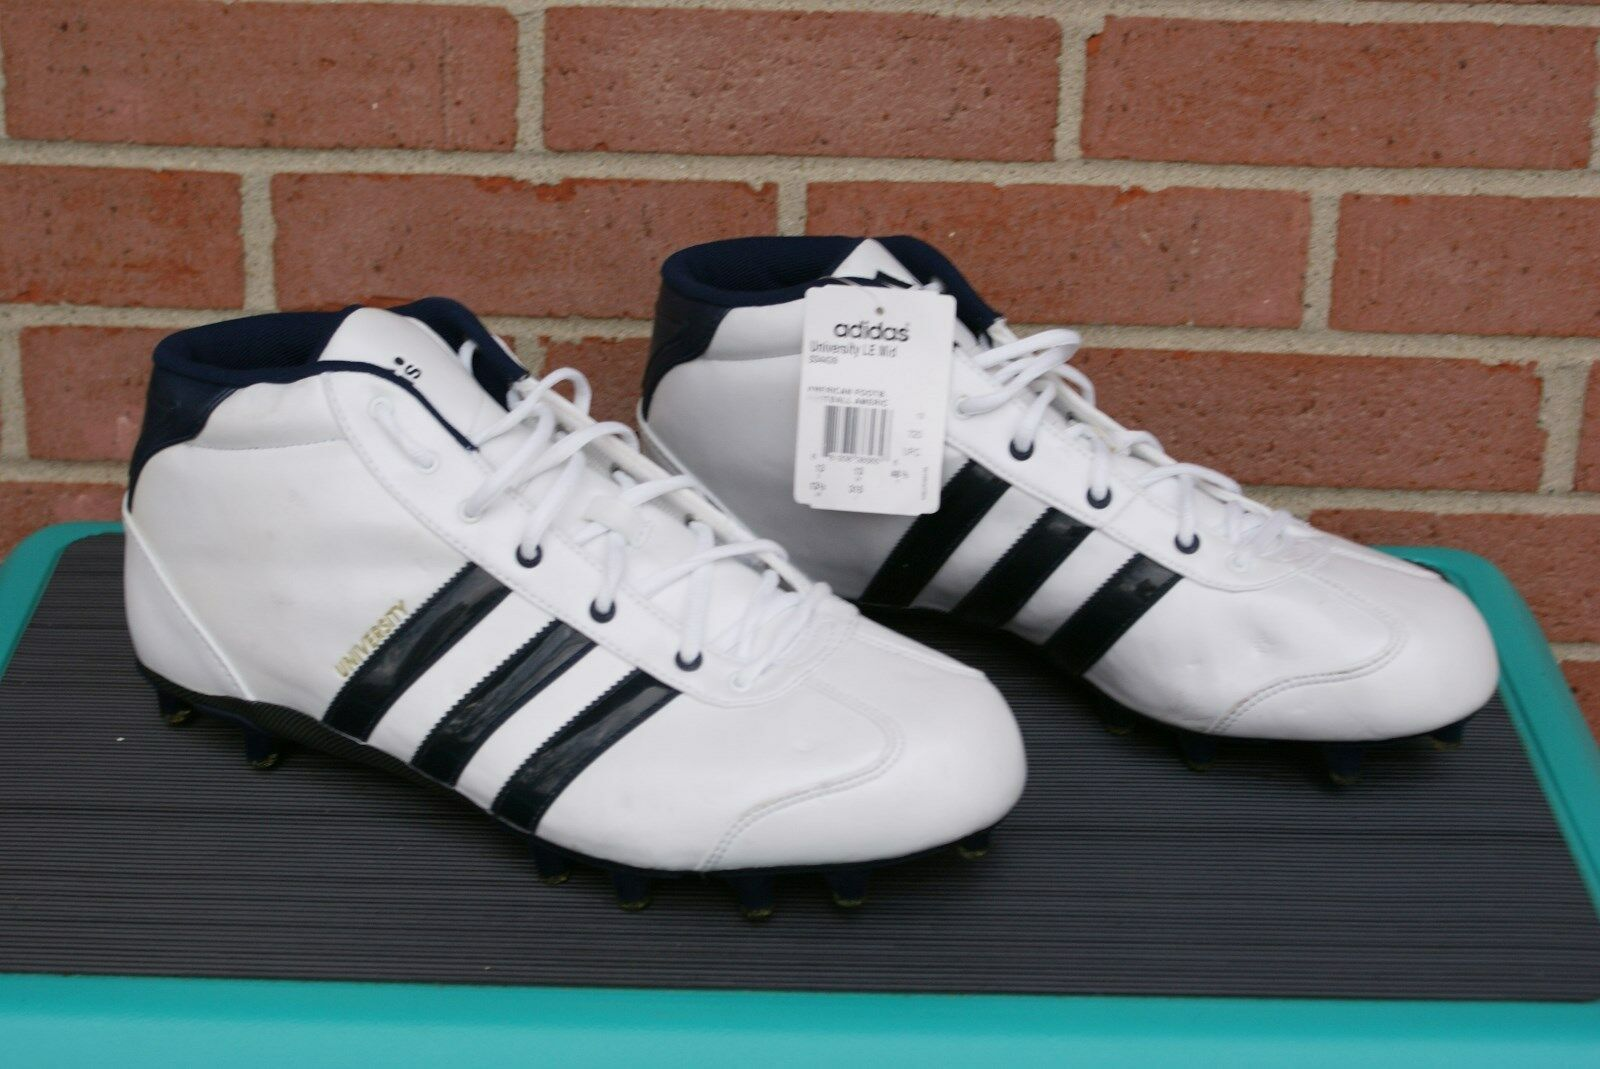 Men's ADIDAS  university le mid Football Cleats Shoes size White 13.5 New best-selling model of the brand